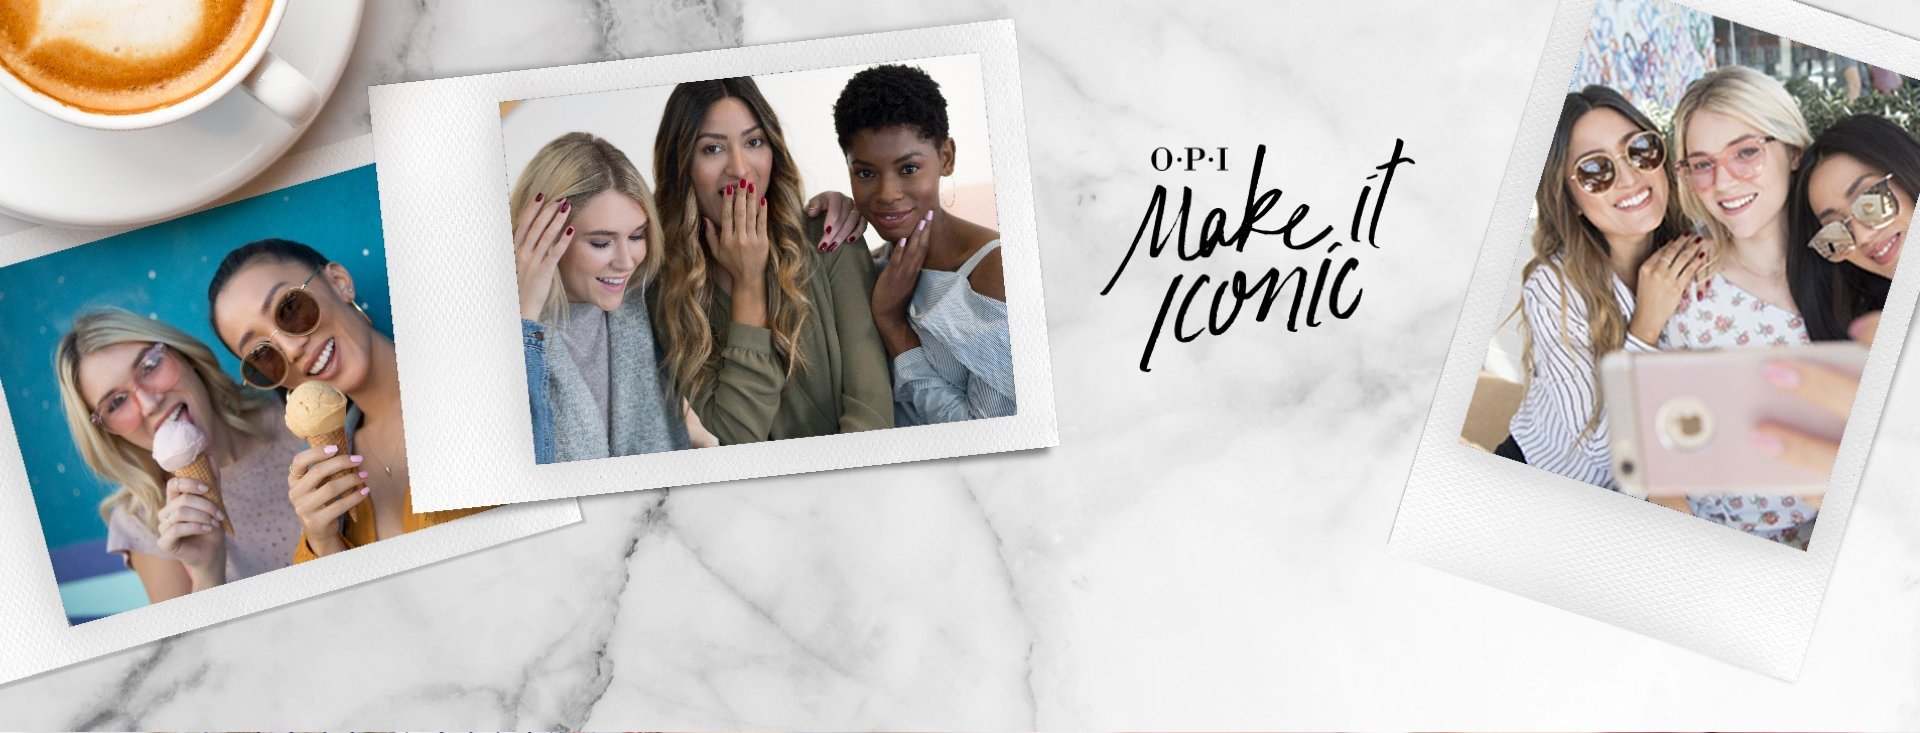 OPI iconic shades Make It Iconic collection